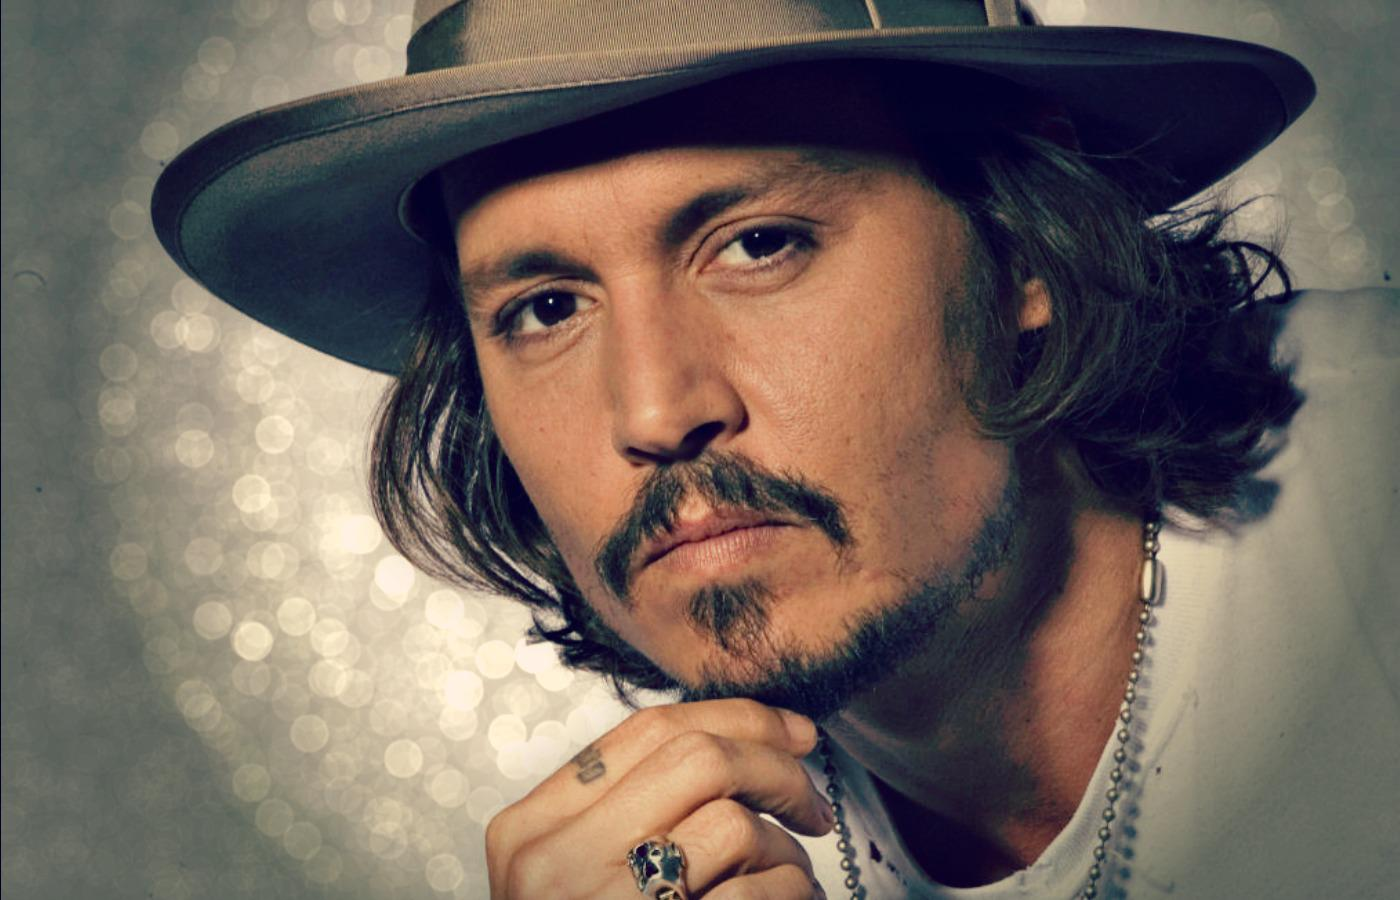 Things you probably don't know about Johnny Depp